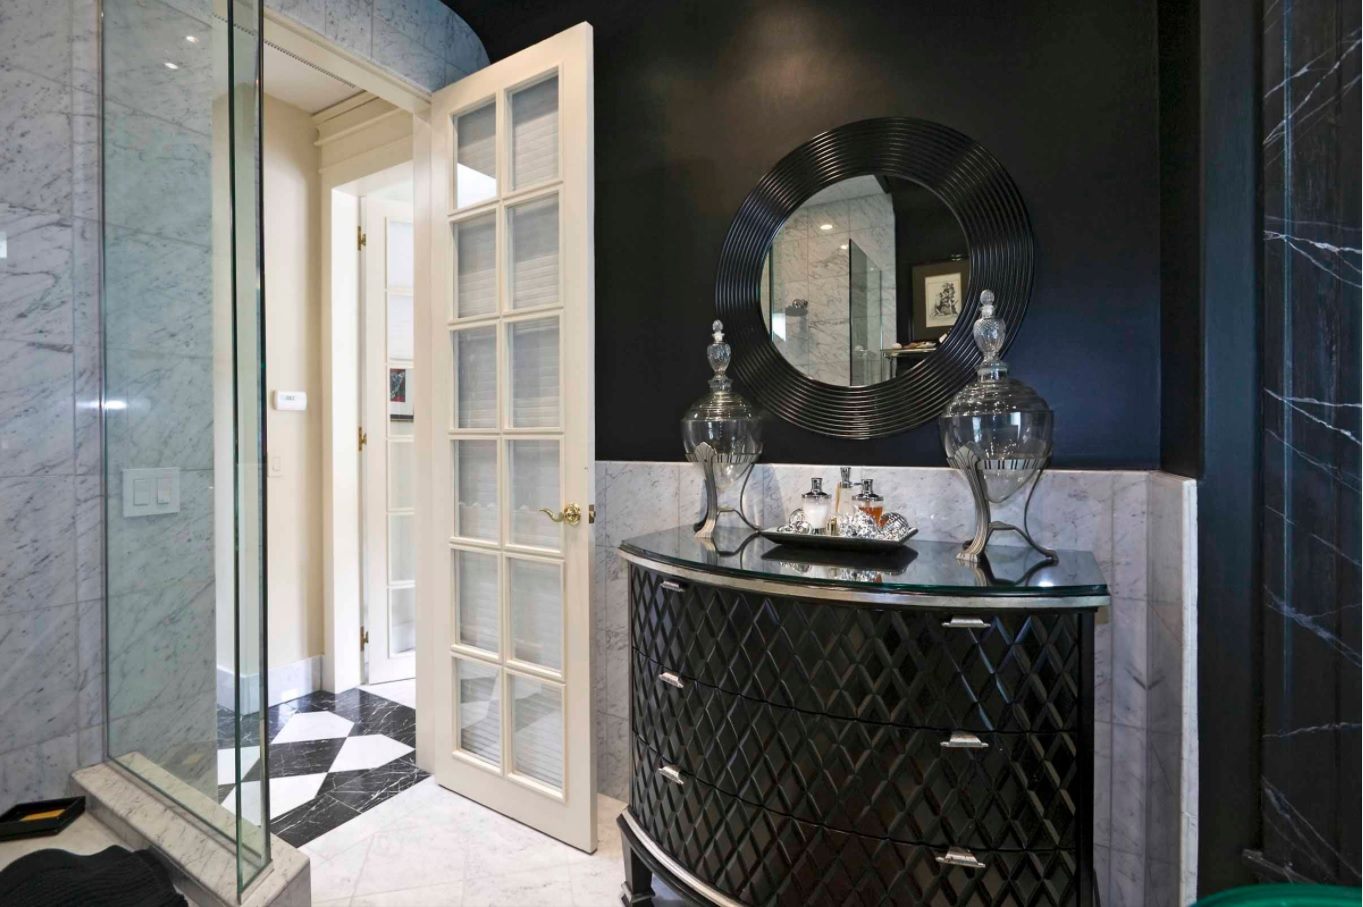 Black lacquer furniture and painted top part of the wall for luxuriously looking bathroom